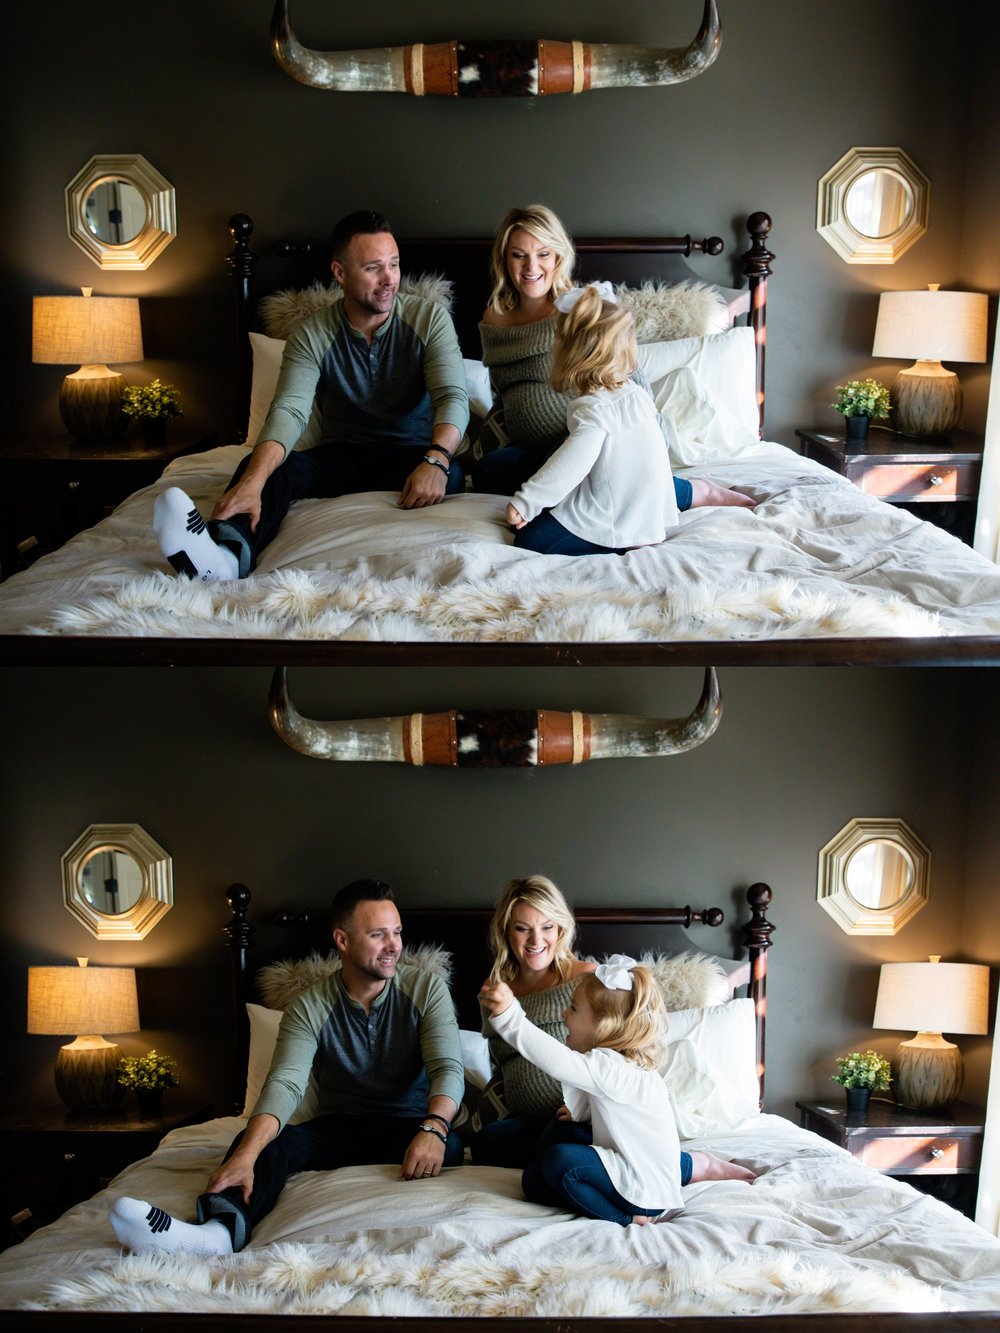 Lifestyle Maternity Photography in Kansas City by Merry Ohler (4)